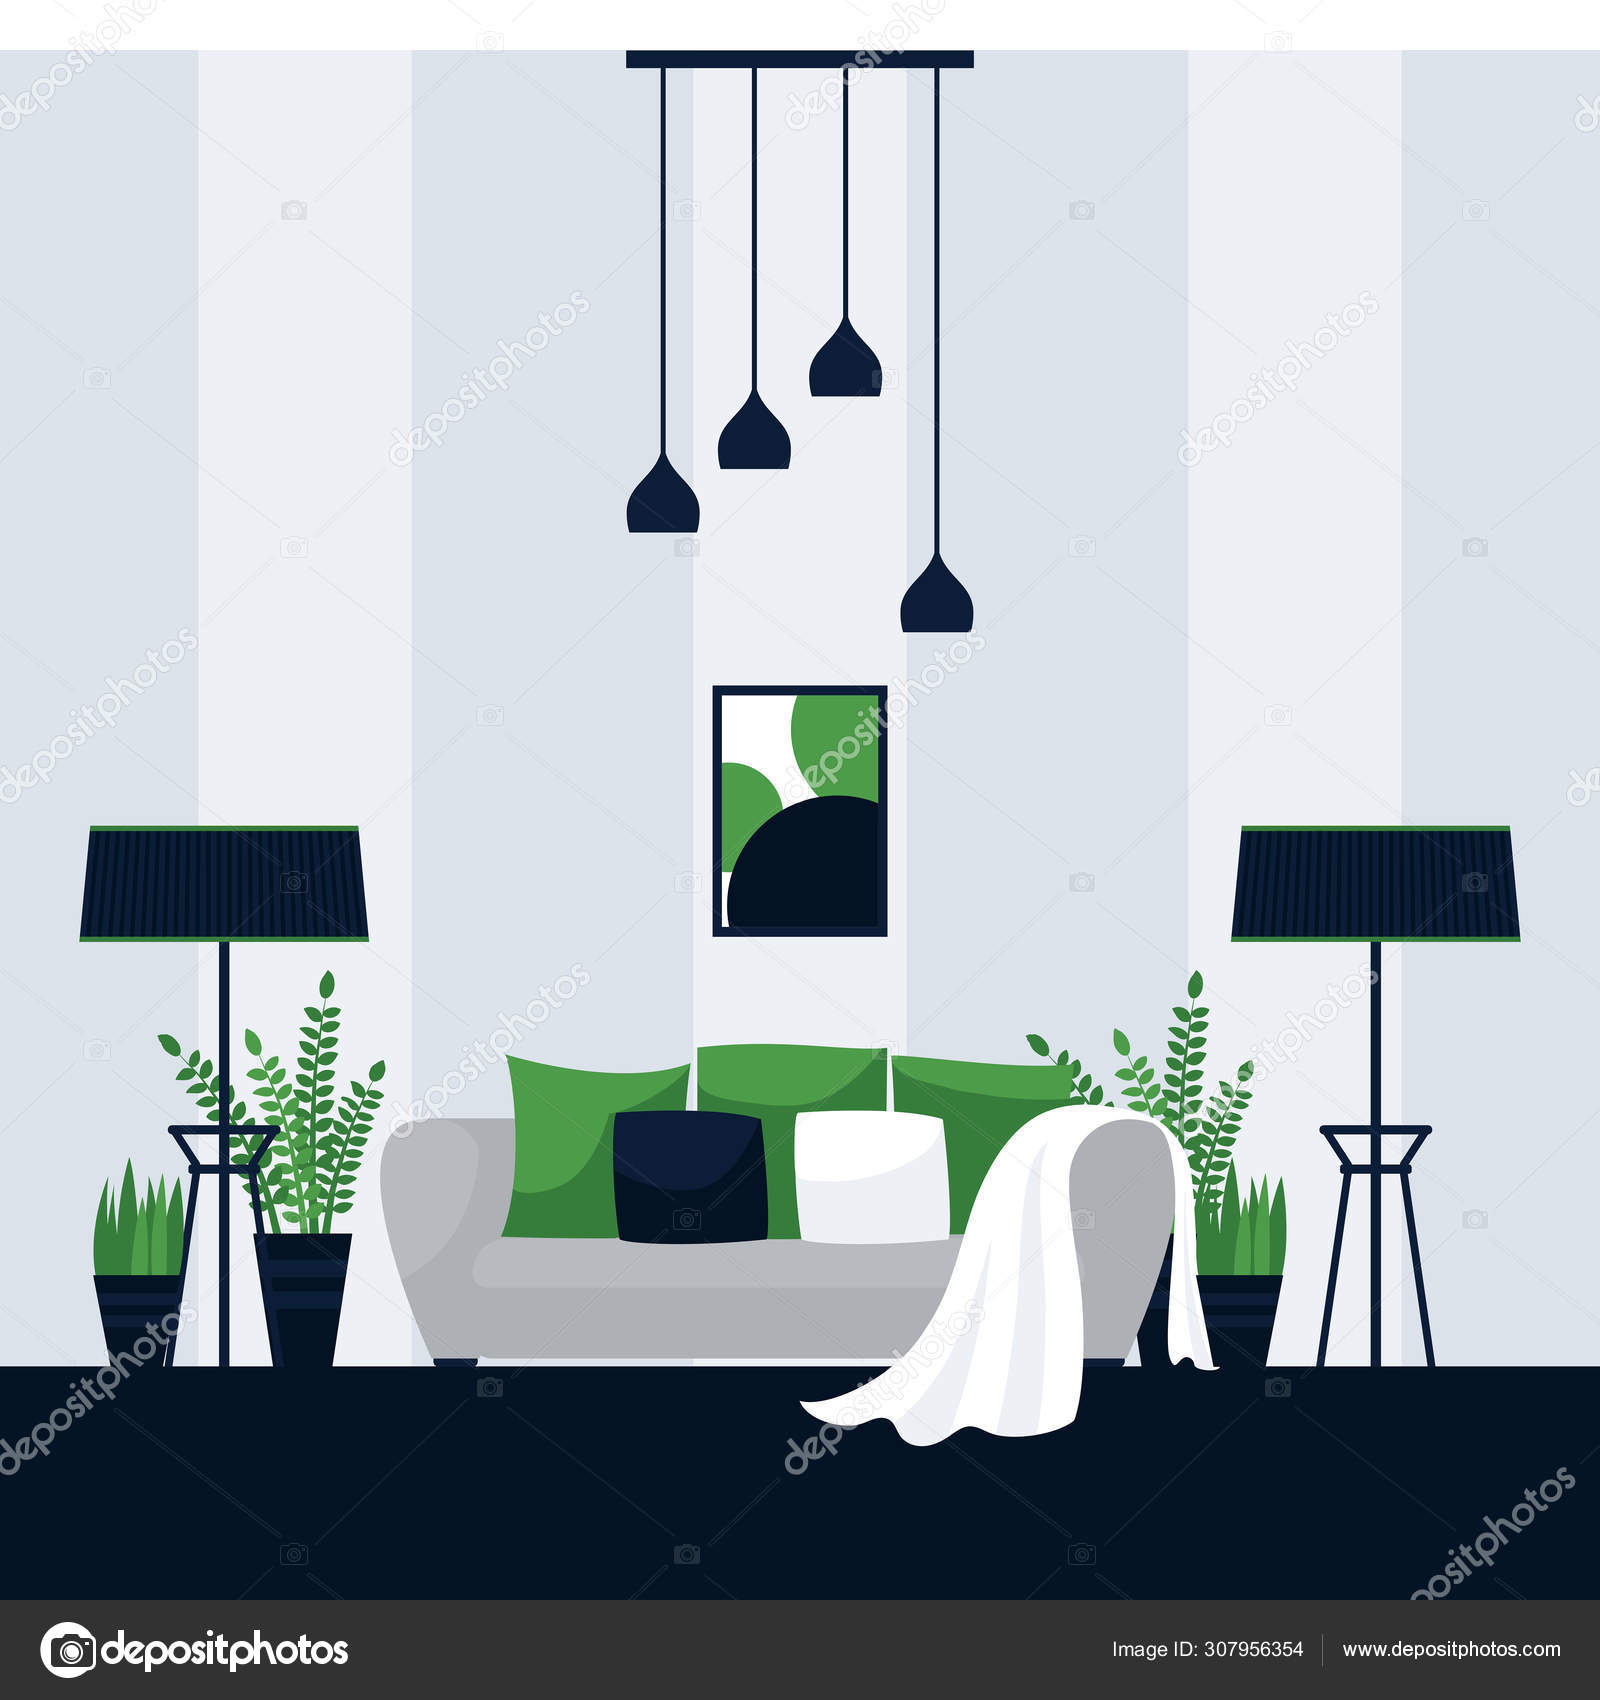 Interior Design Of A Living Room Vector Illustration In Flat Style Modern Decoration Of Cozy Apartment Creative Concept For Comfortable Lifestyle In Urban Interior Stock Vector C Adekvat 307956354